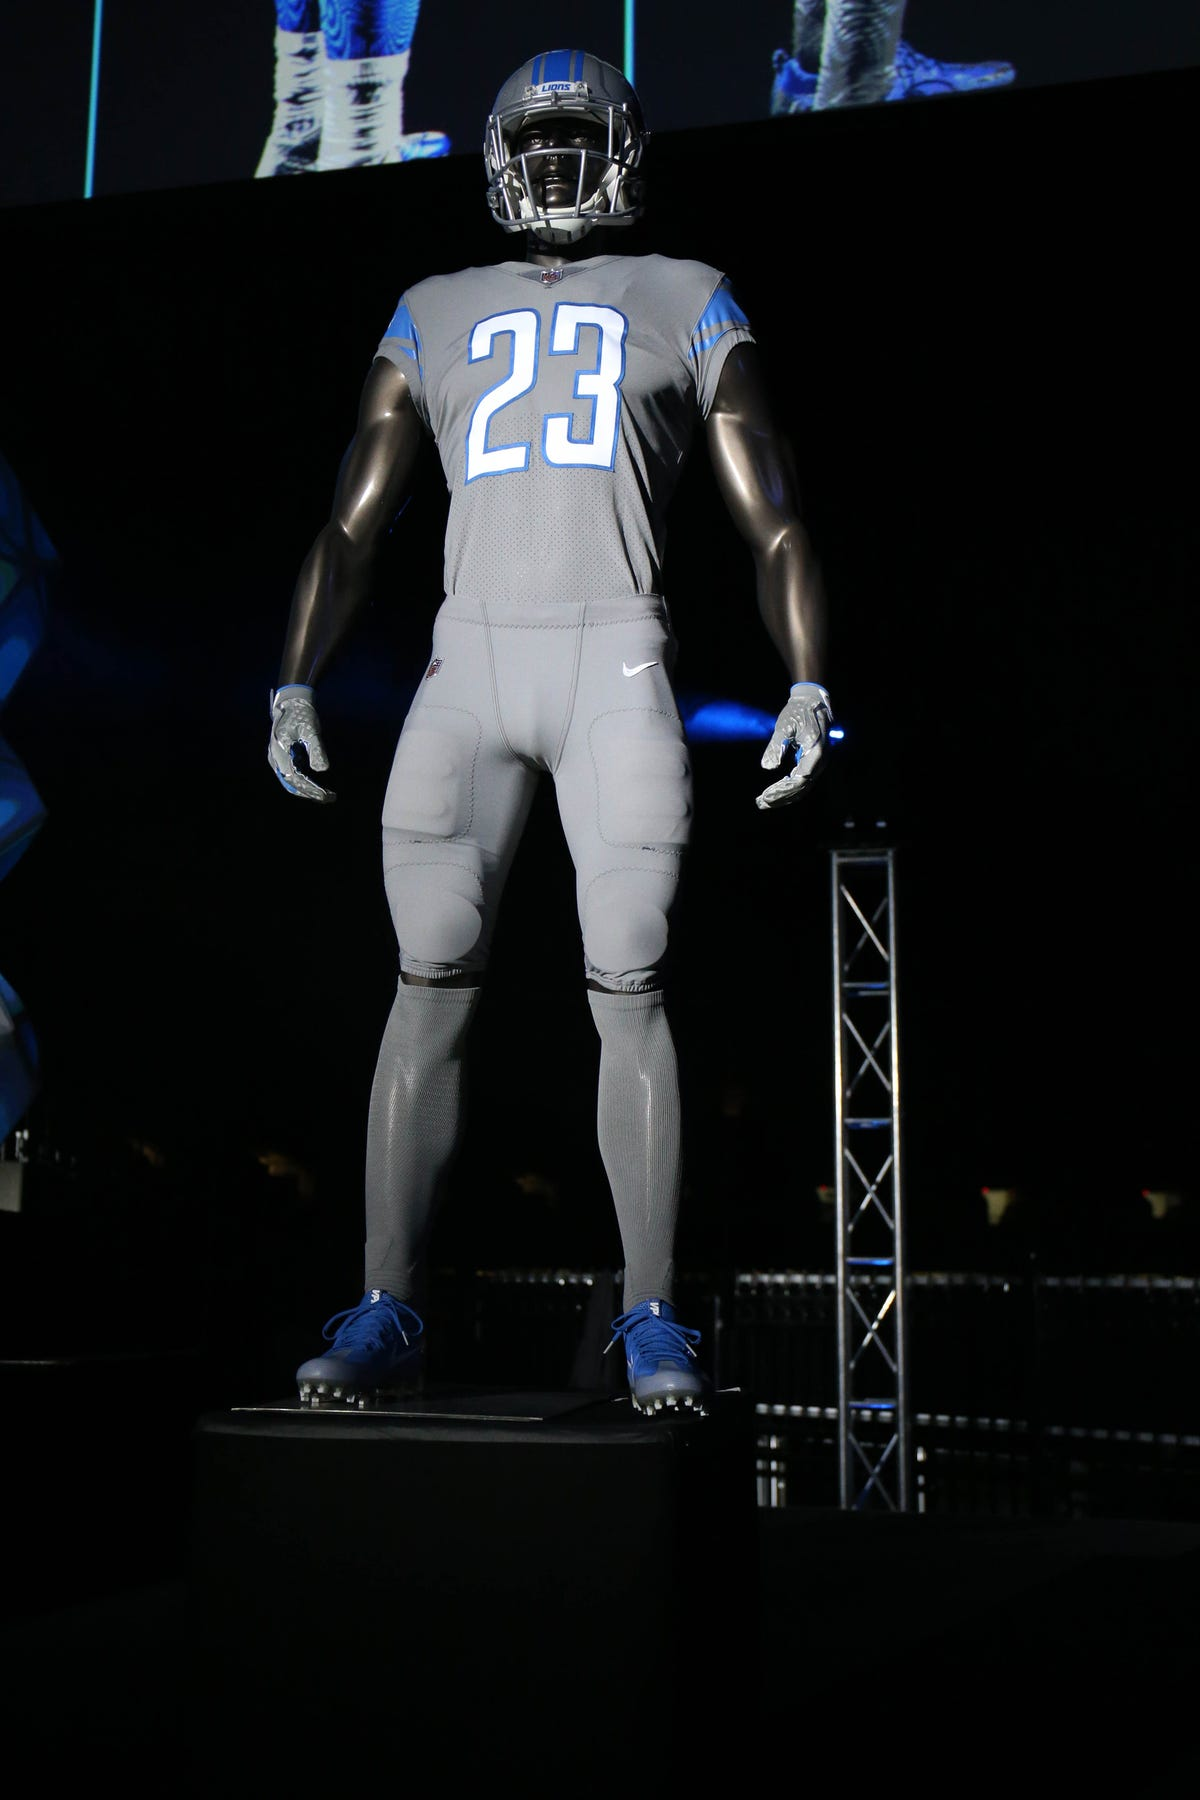 on sale 35f45 5b7e9 Detroit Lions to wear all 4 uniforms; gray Color Rush coming ...